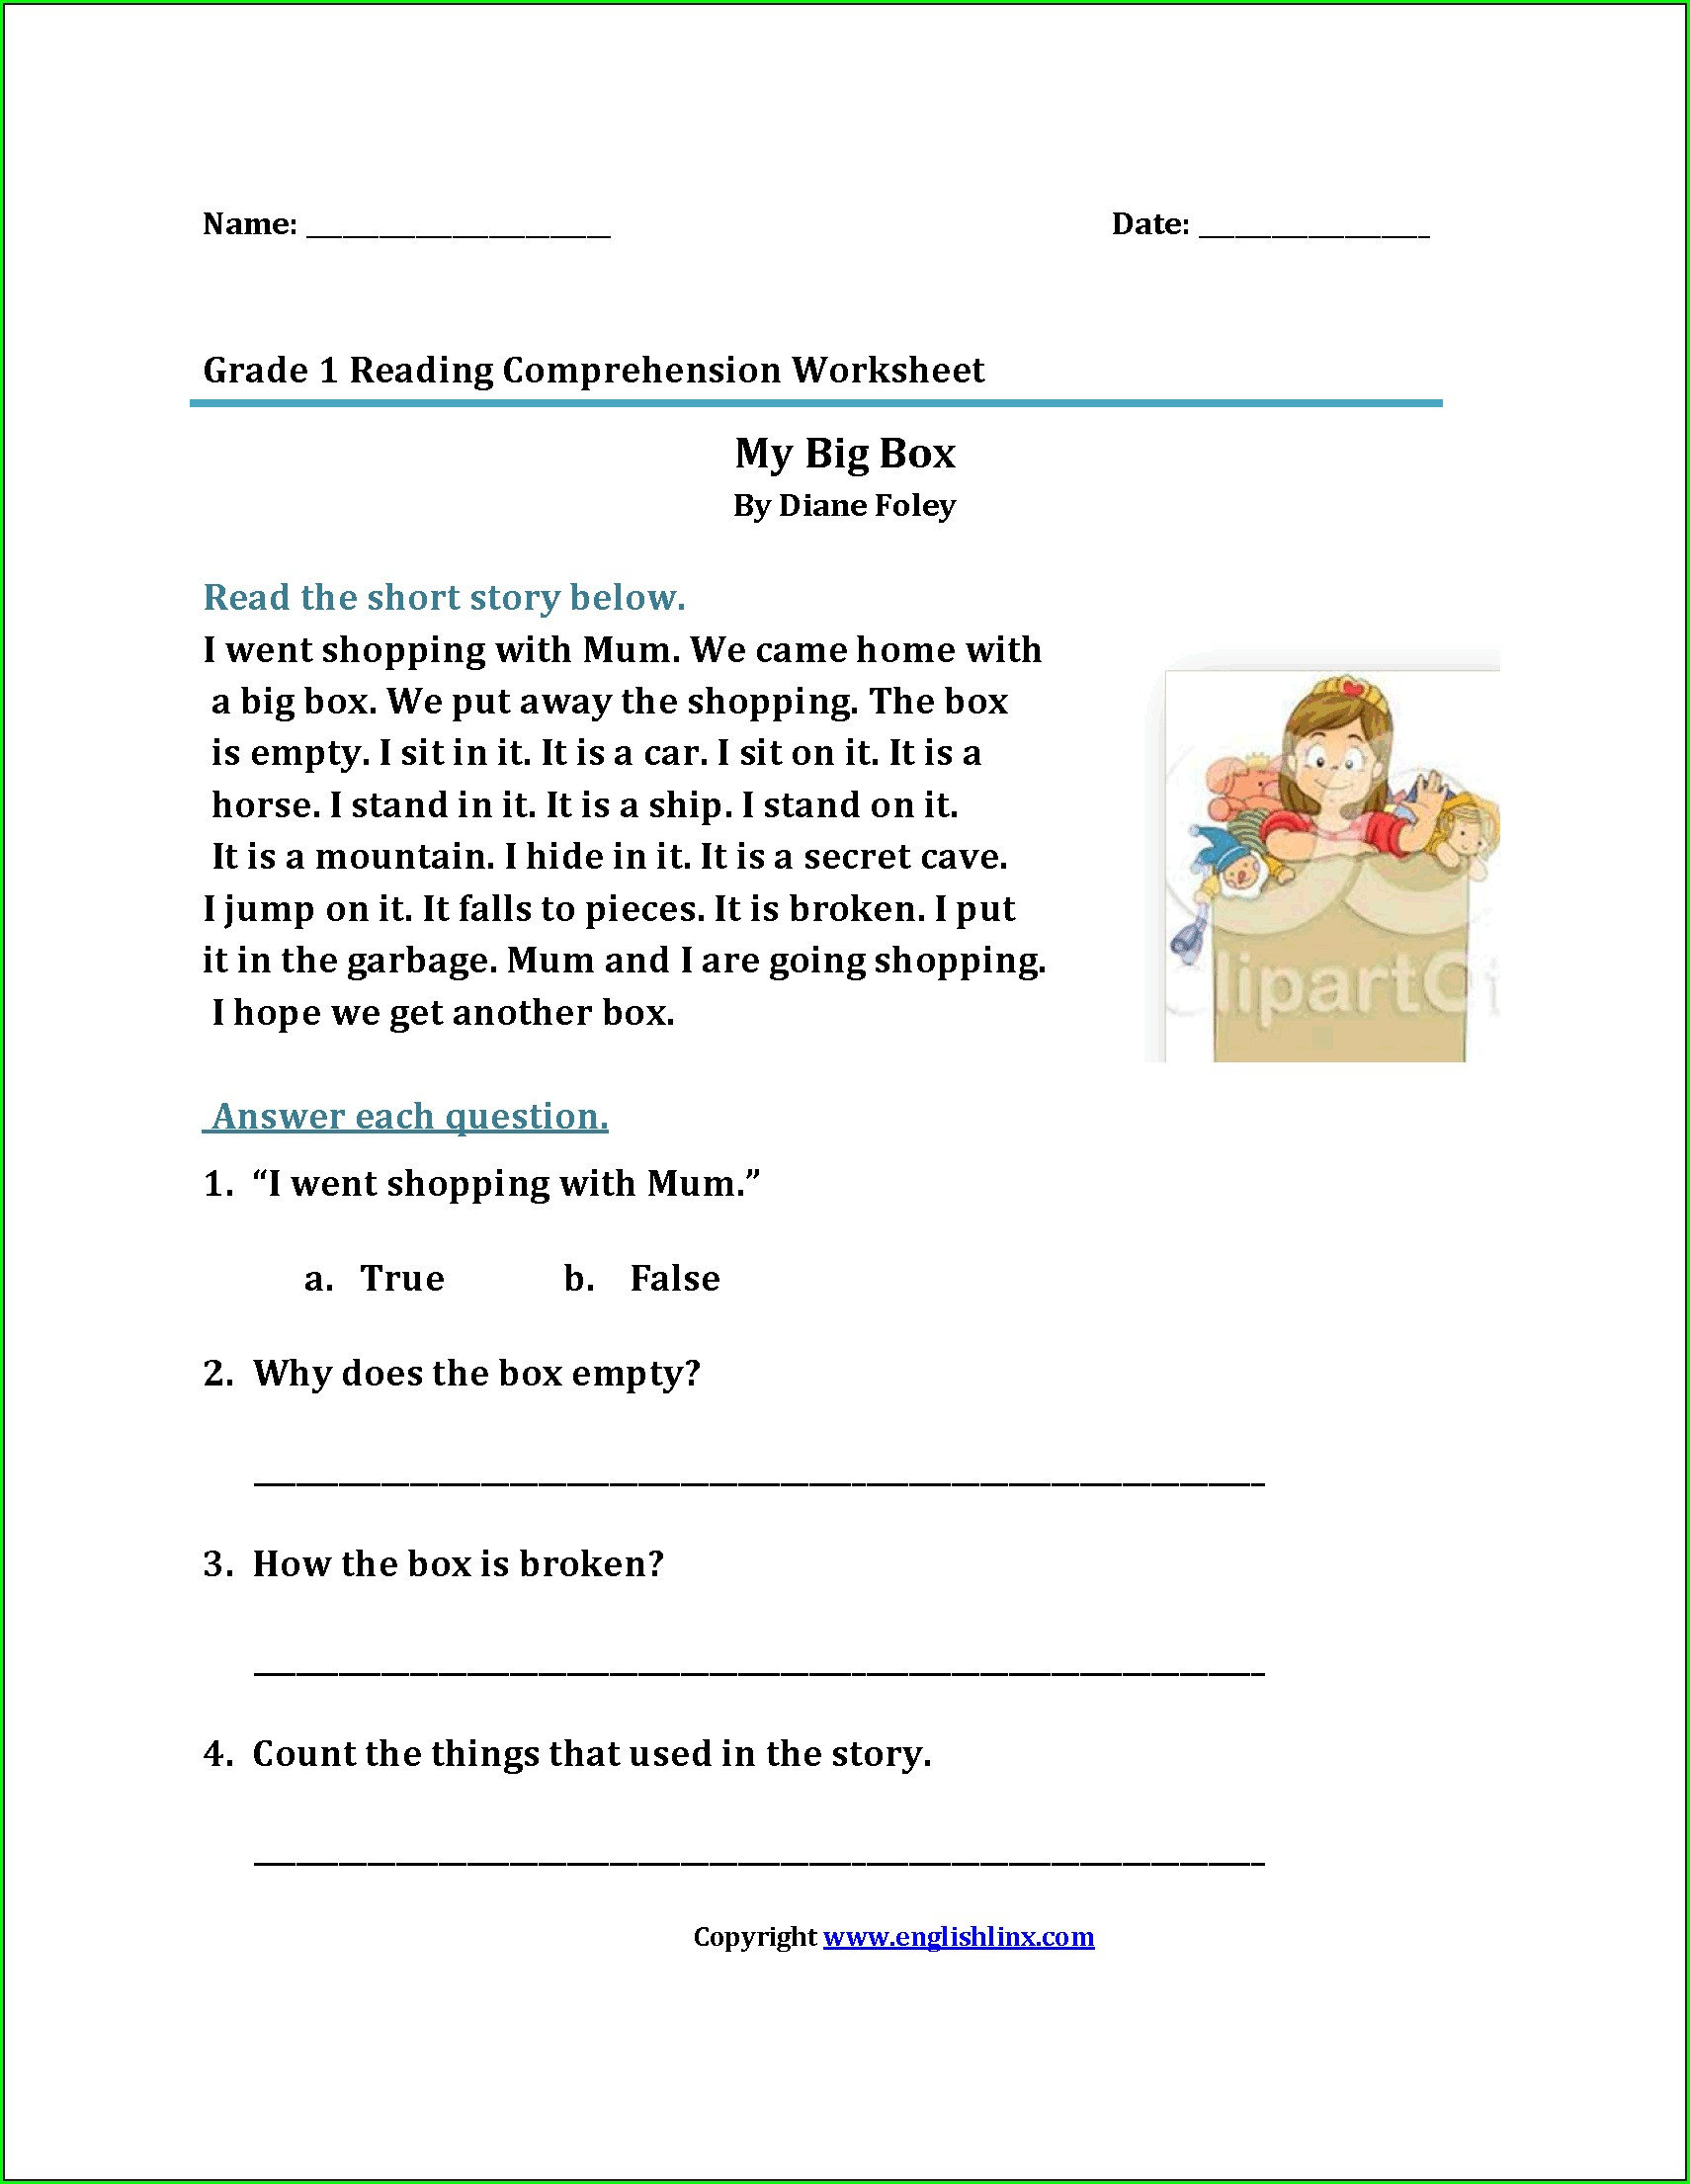 Grade 1 Reading Worksheets South Africa